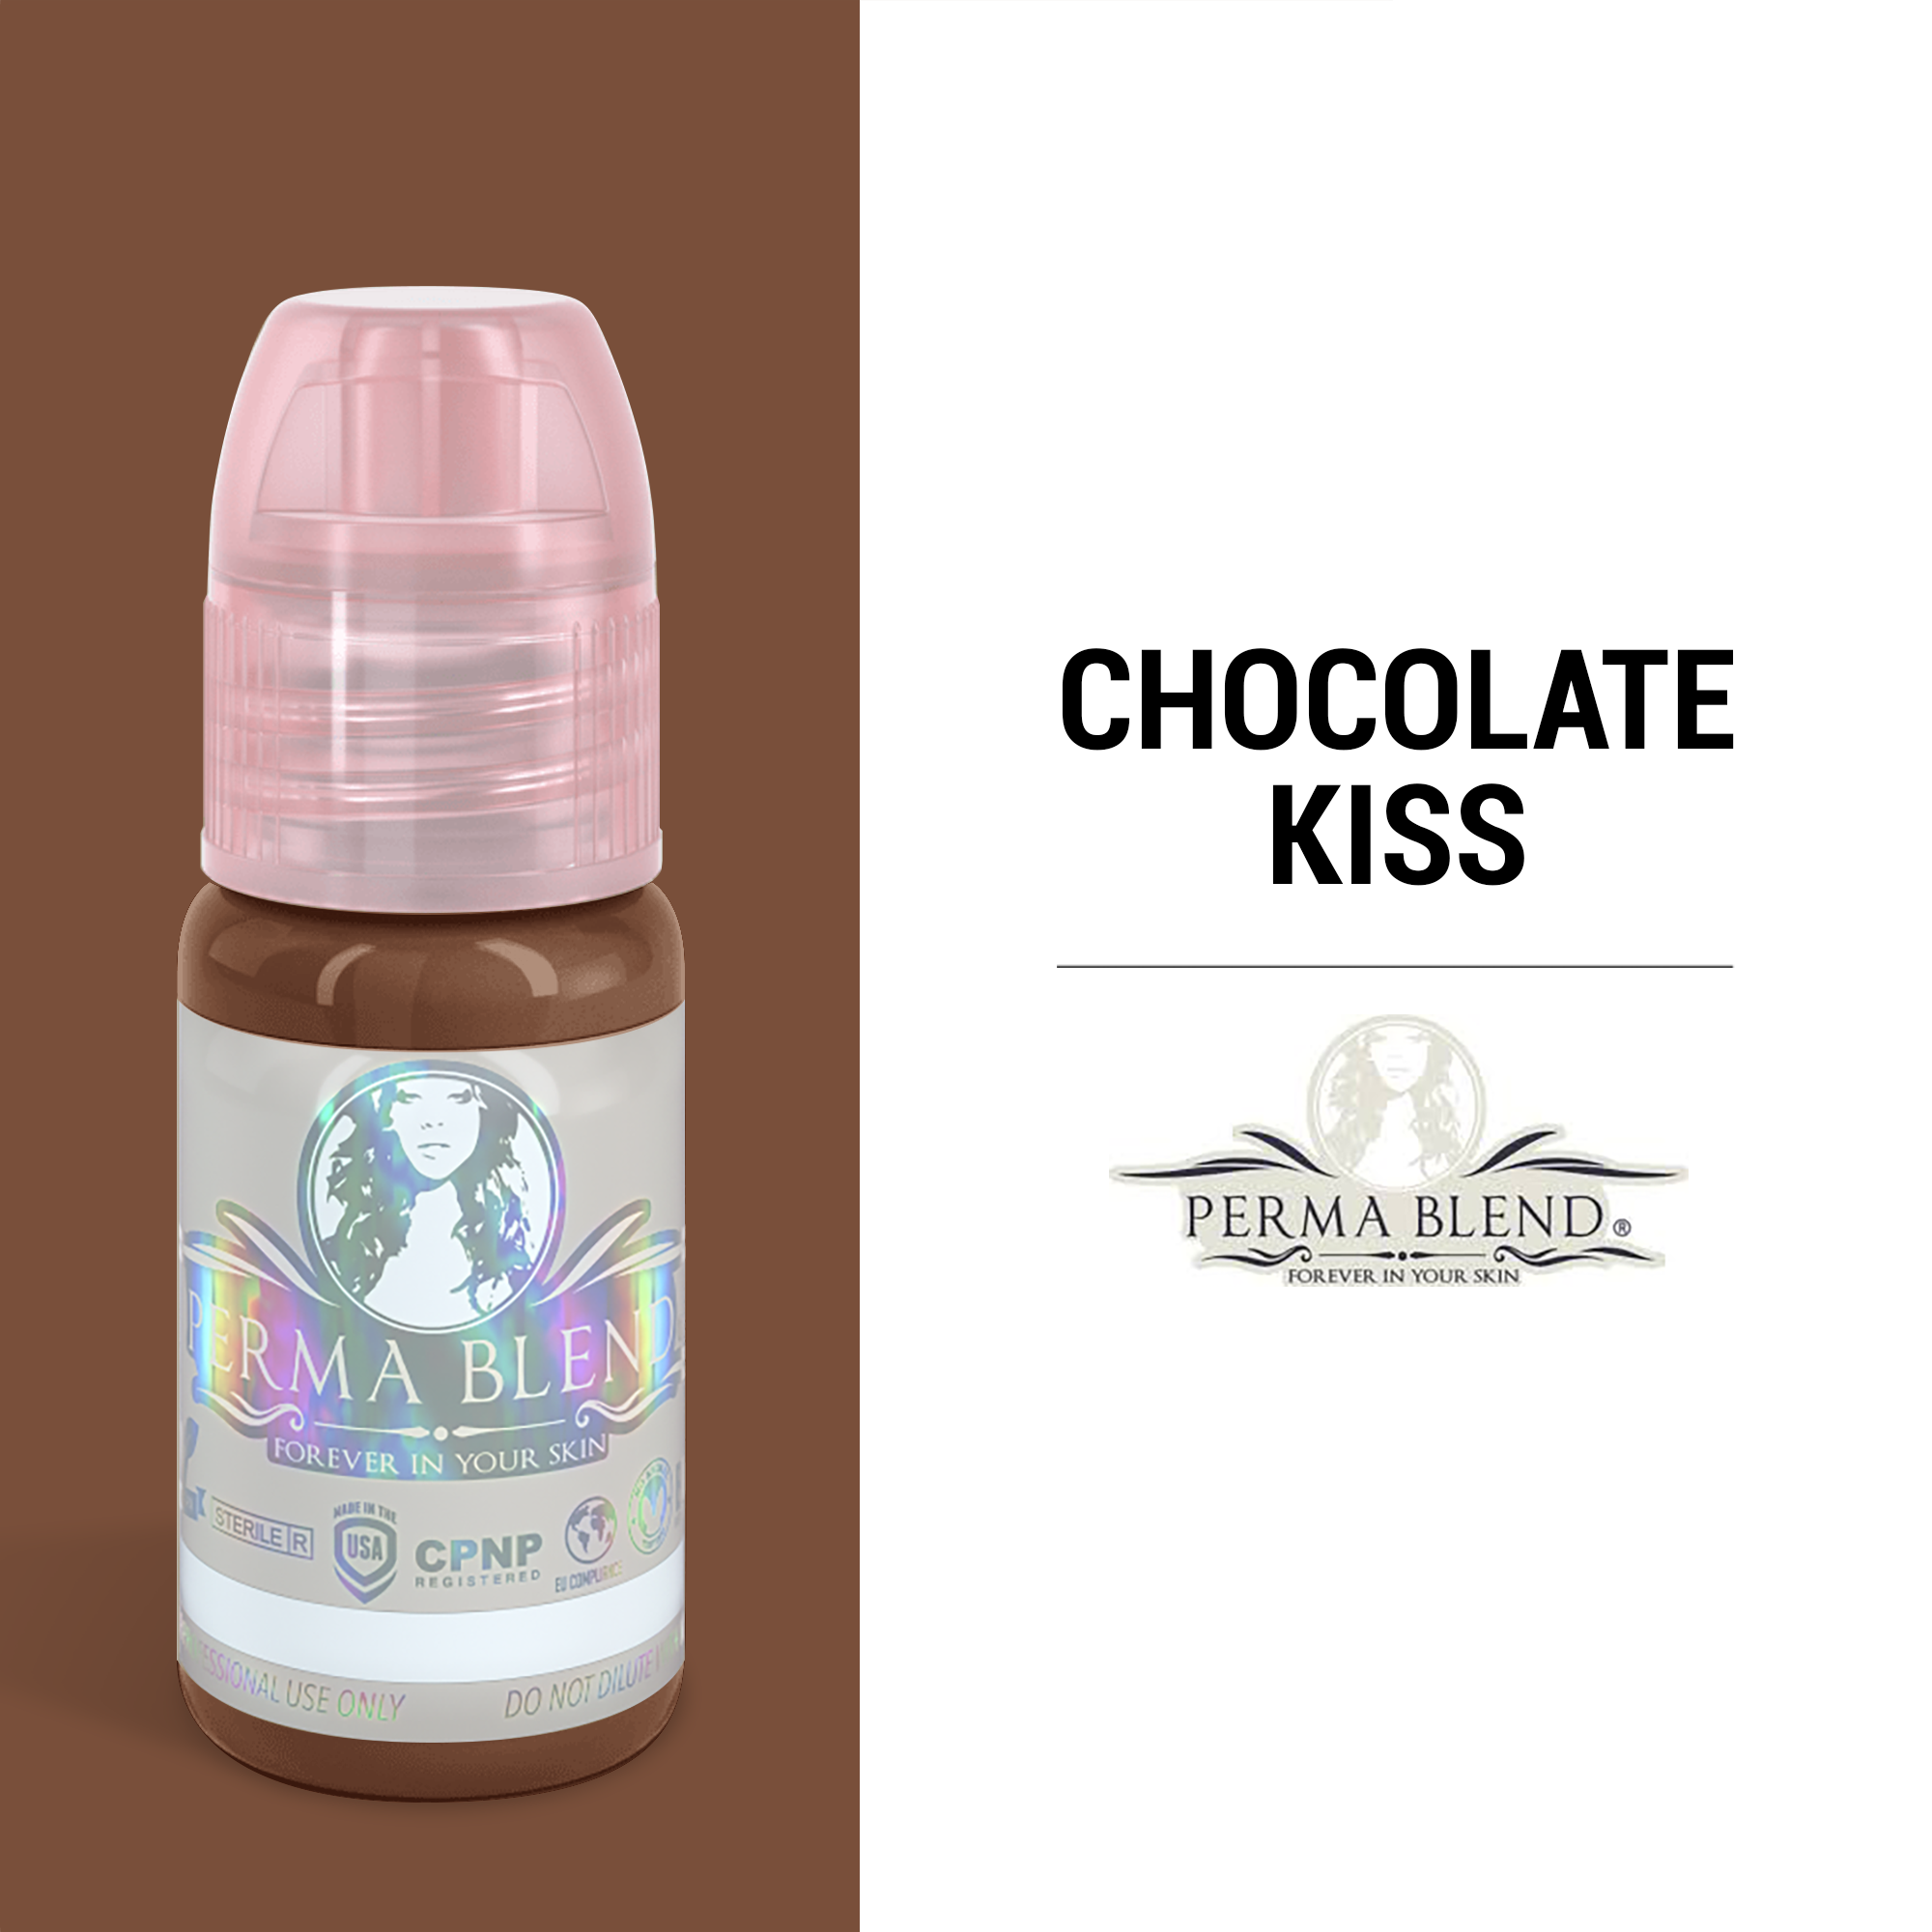 Perma Blend Chocolate Kiss